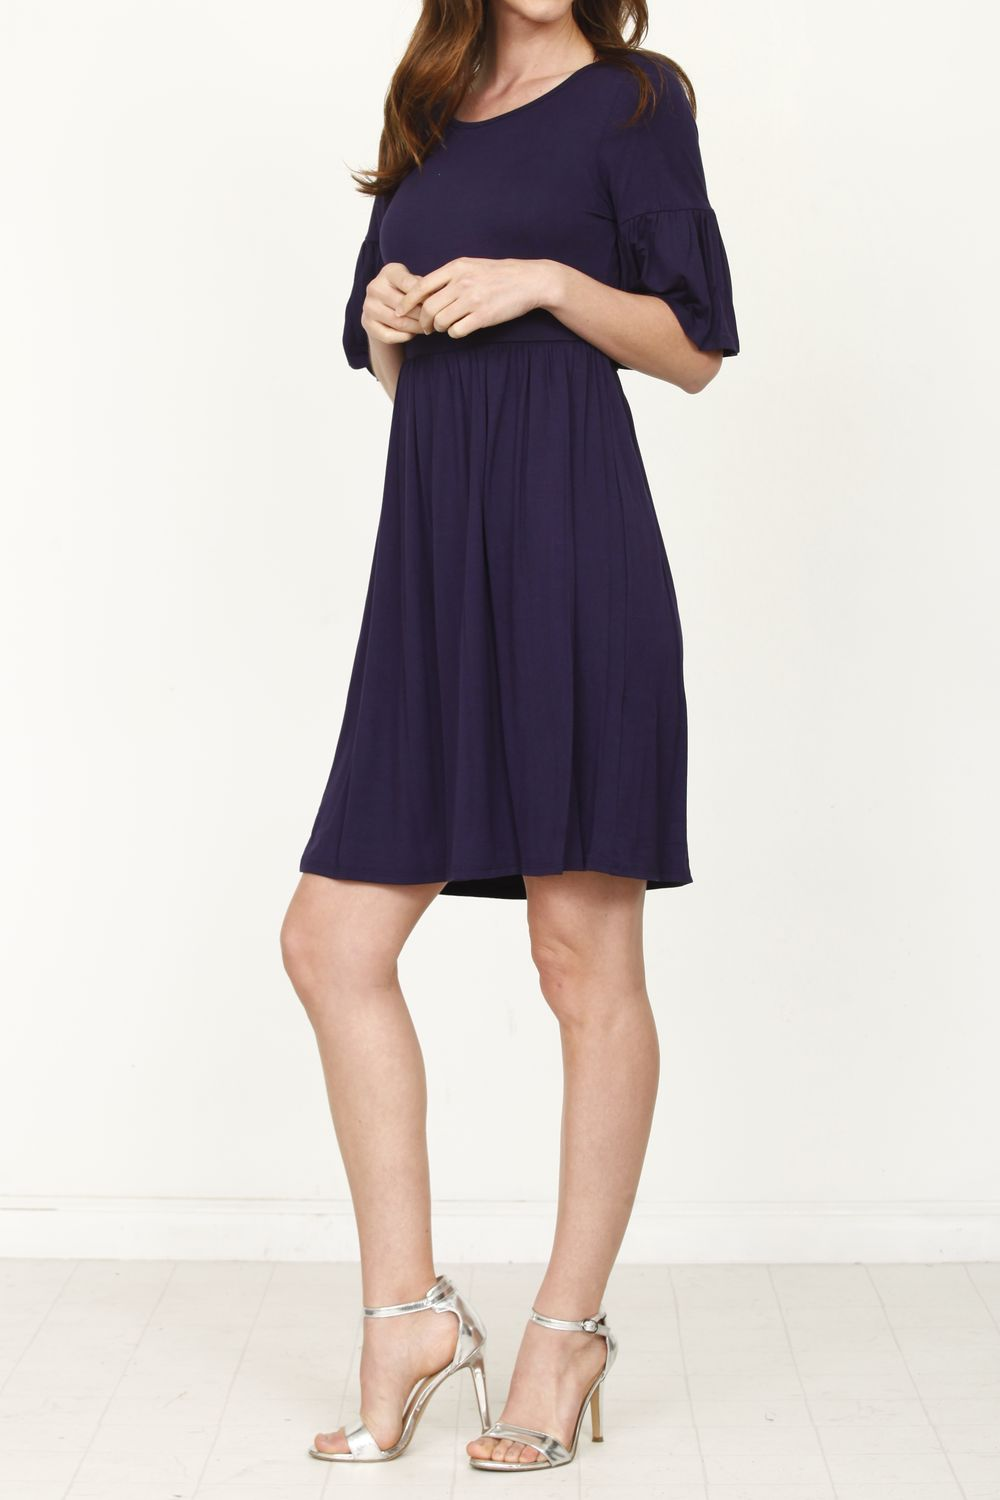 Solid Navy Ruffle Sleeve Mini Dress